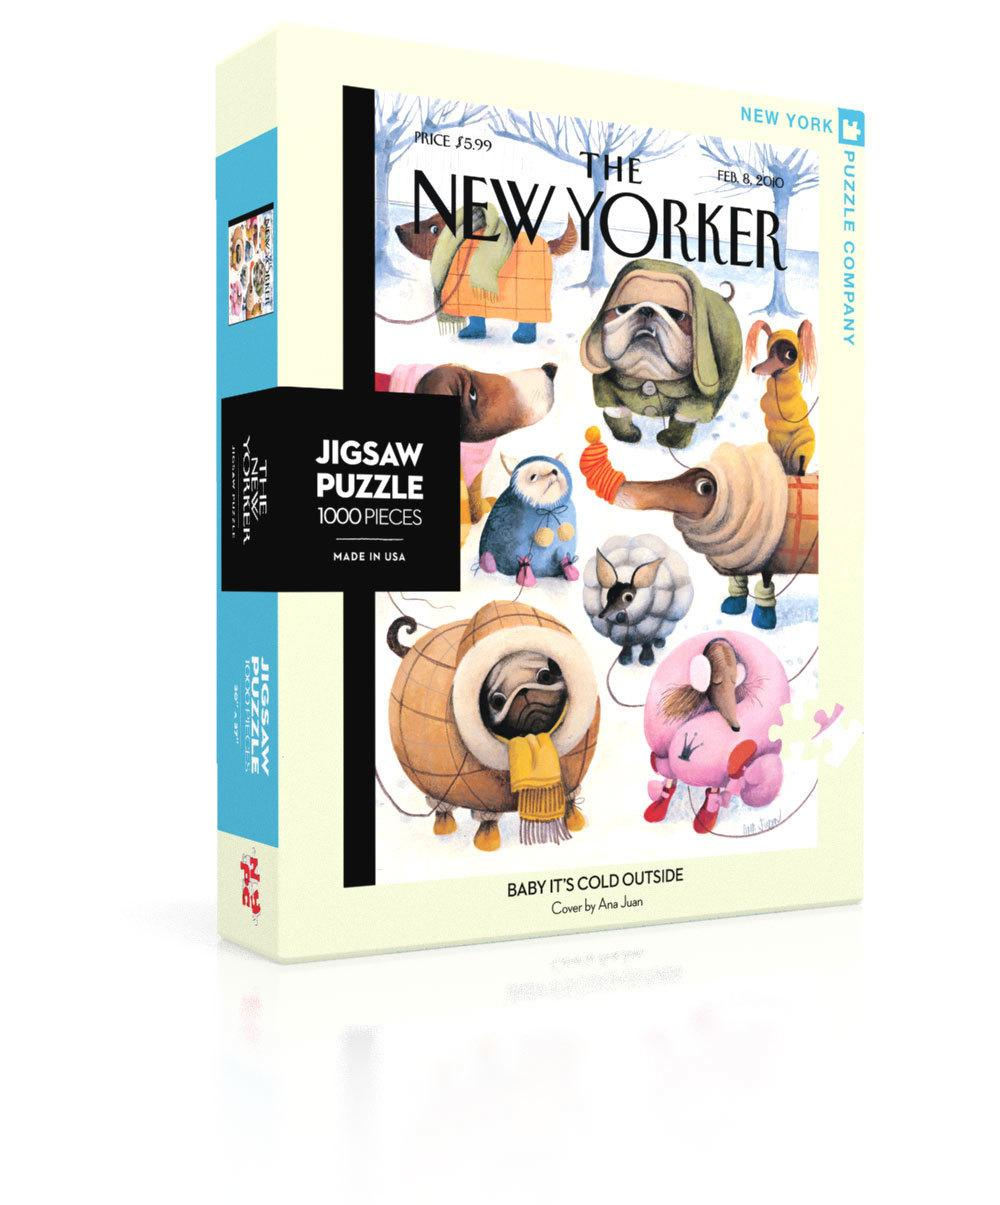 New Yorker Jigsaw Puzzle: Baby It's Cold Outside Cover (1000 pieces)